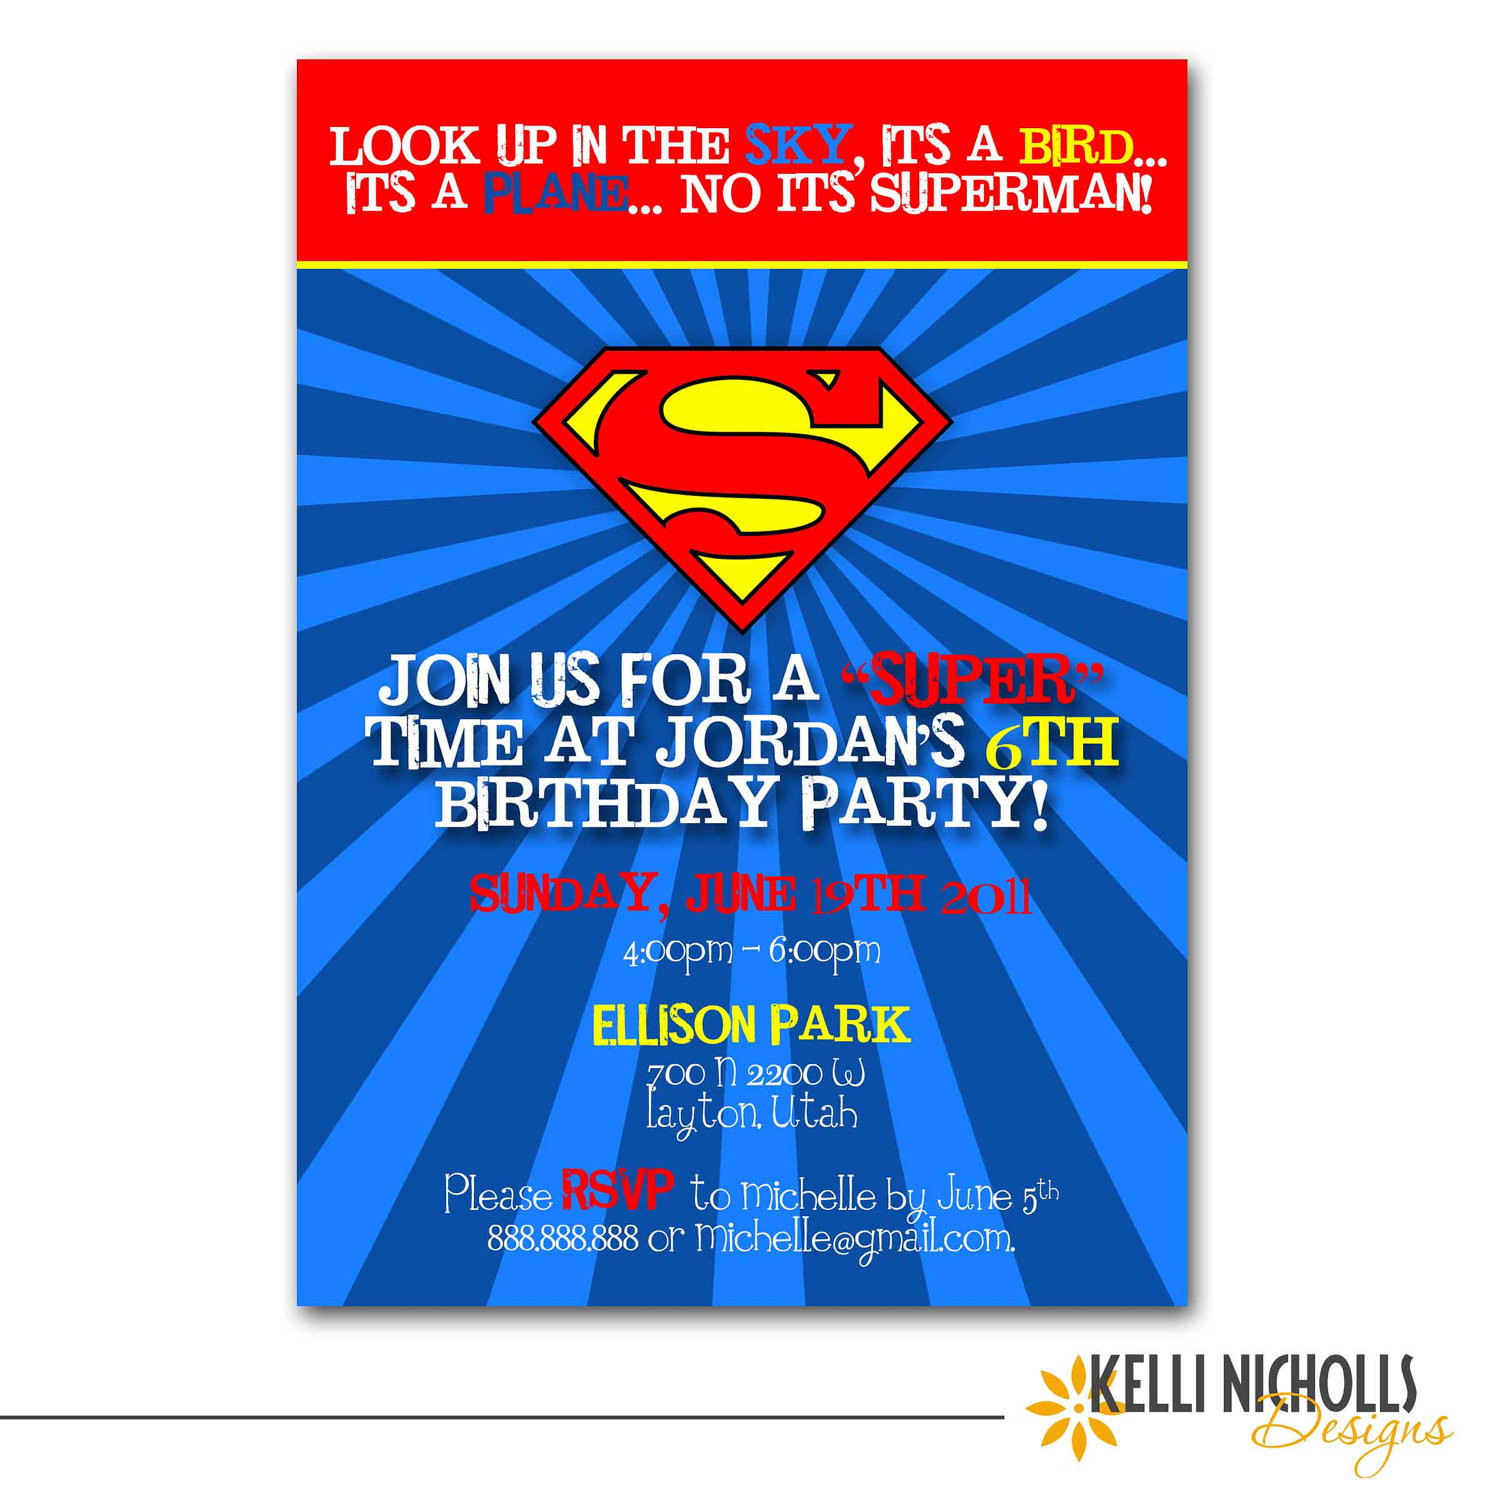 Best ideas about Superman Birthday Invitations . Save or Pin Superman Birthday Party Invitation CUSTOM FOR Allison Schall Now.